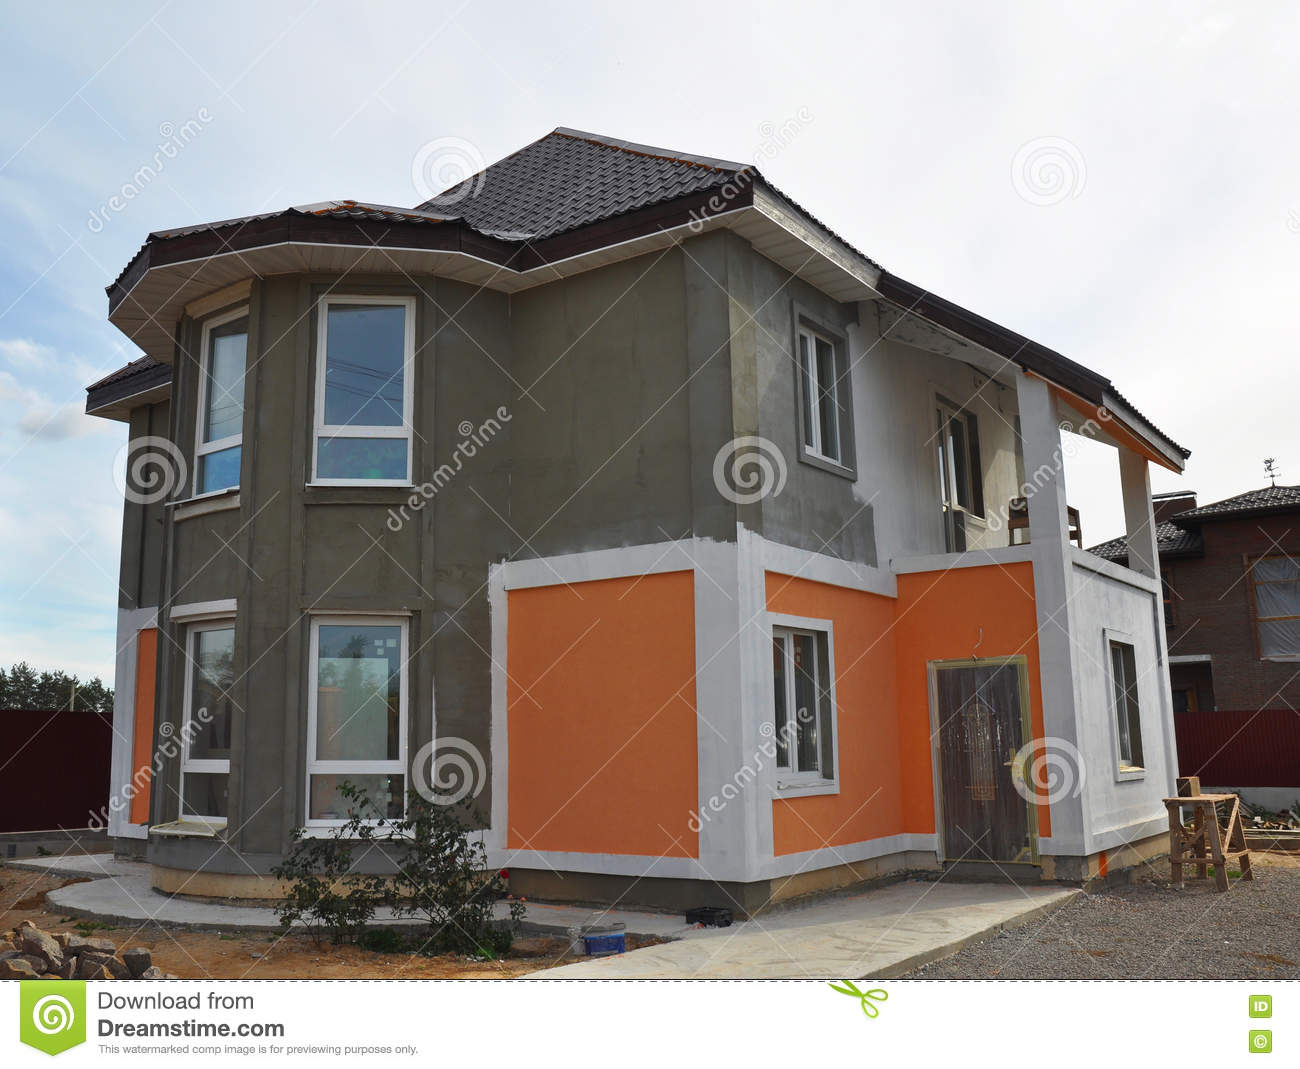 Painting and plastering exterior house wall facade thermal ins stock image image 71463861 How to plaster a house exterior